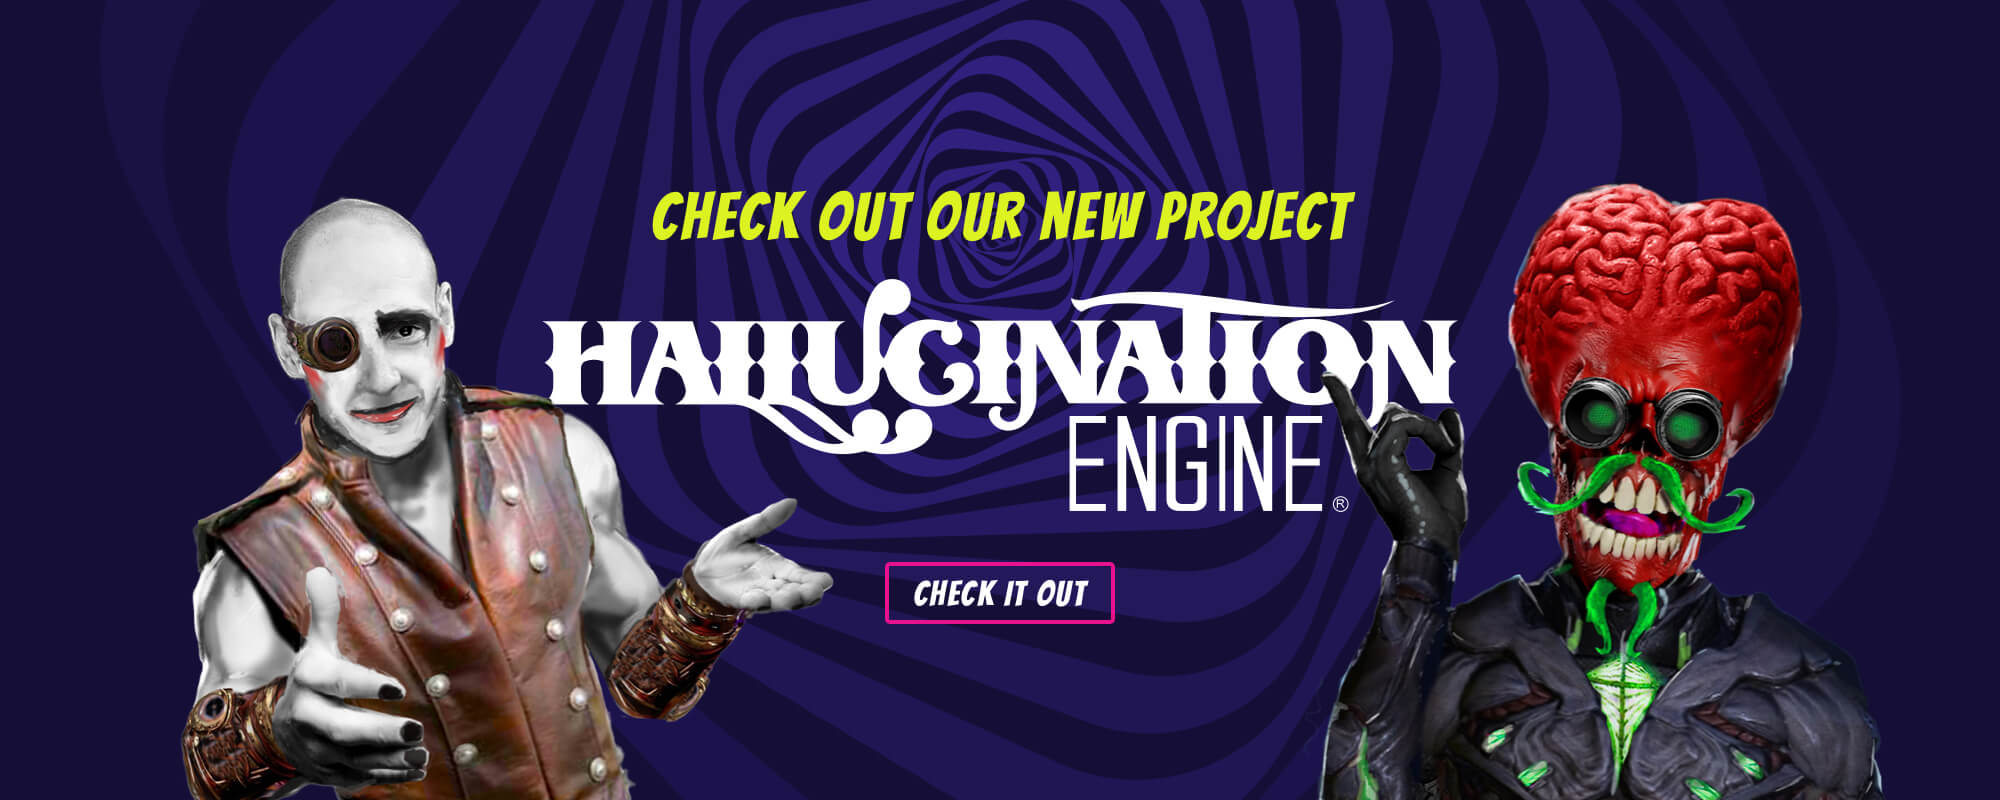 Hallucination Engine Promotion